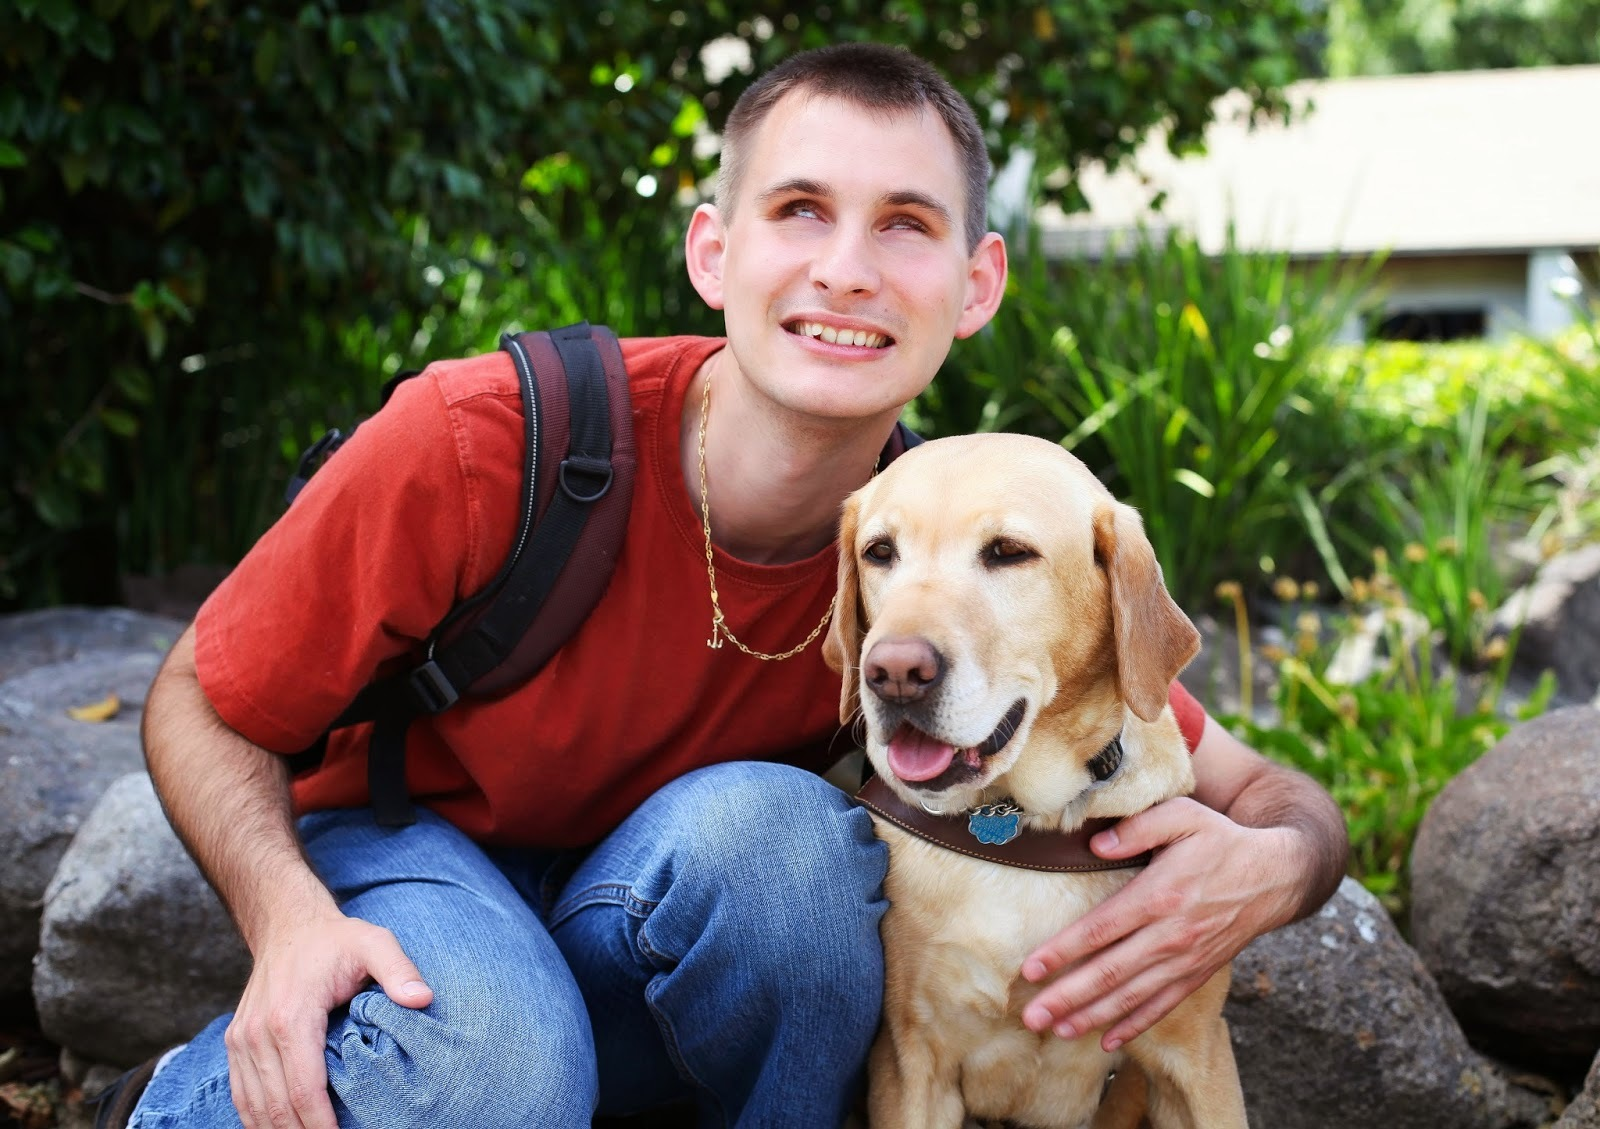 Jake smiles and puts his arm around his guide Angelina (yellow Lab) with rocks and green plants in the background.